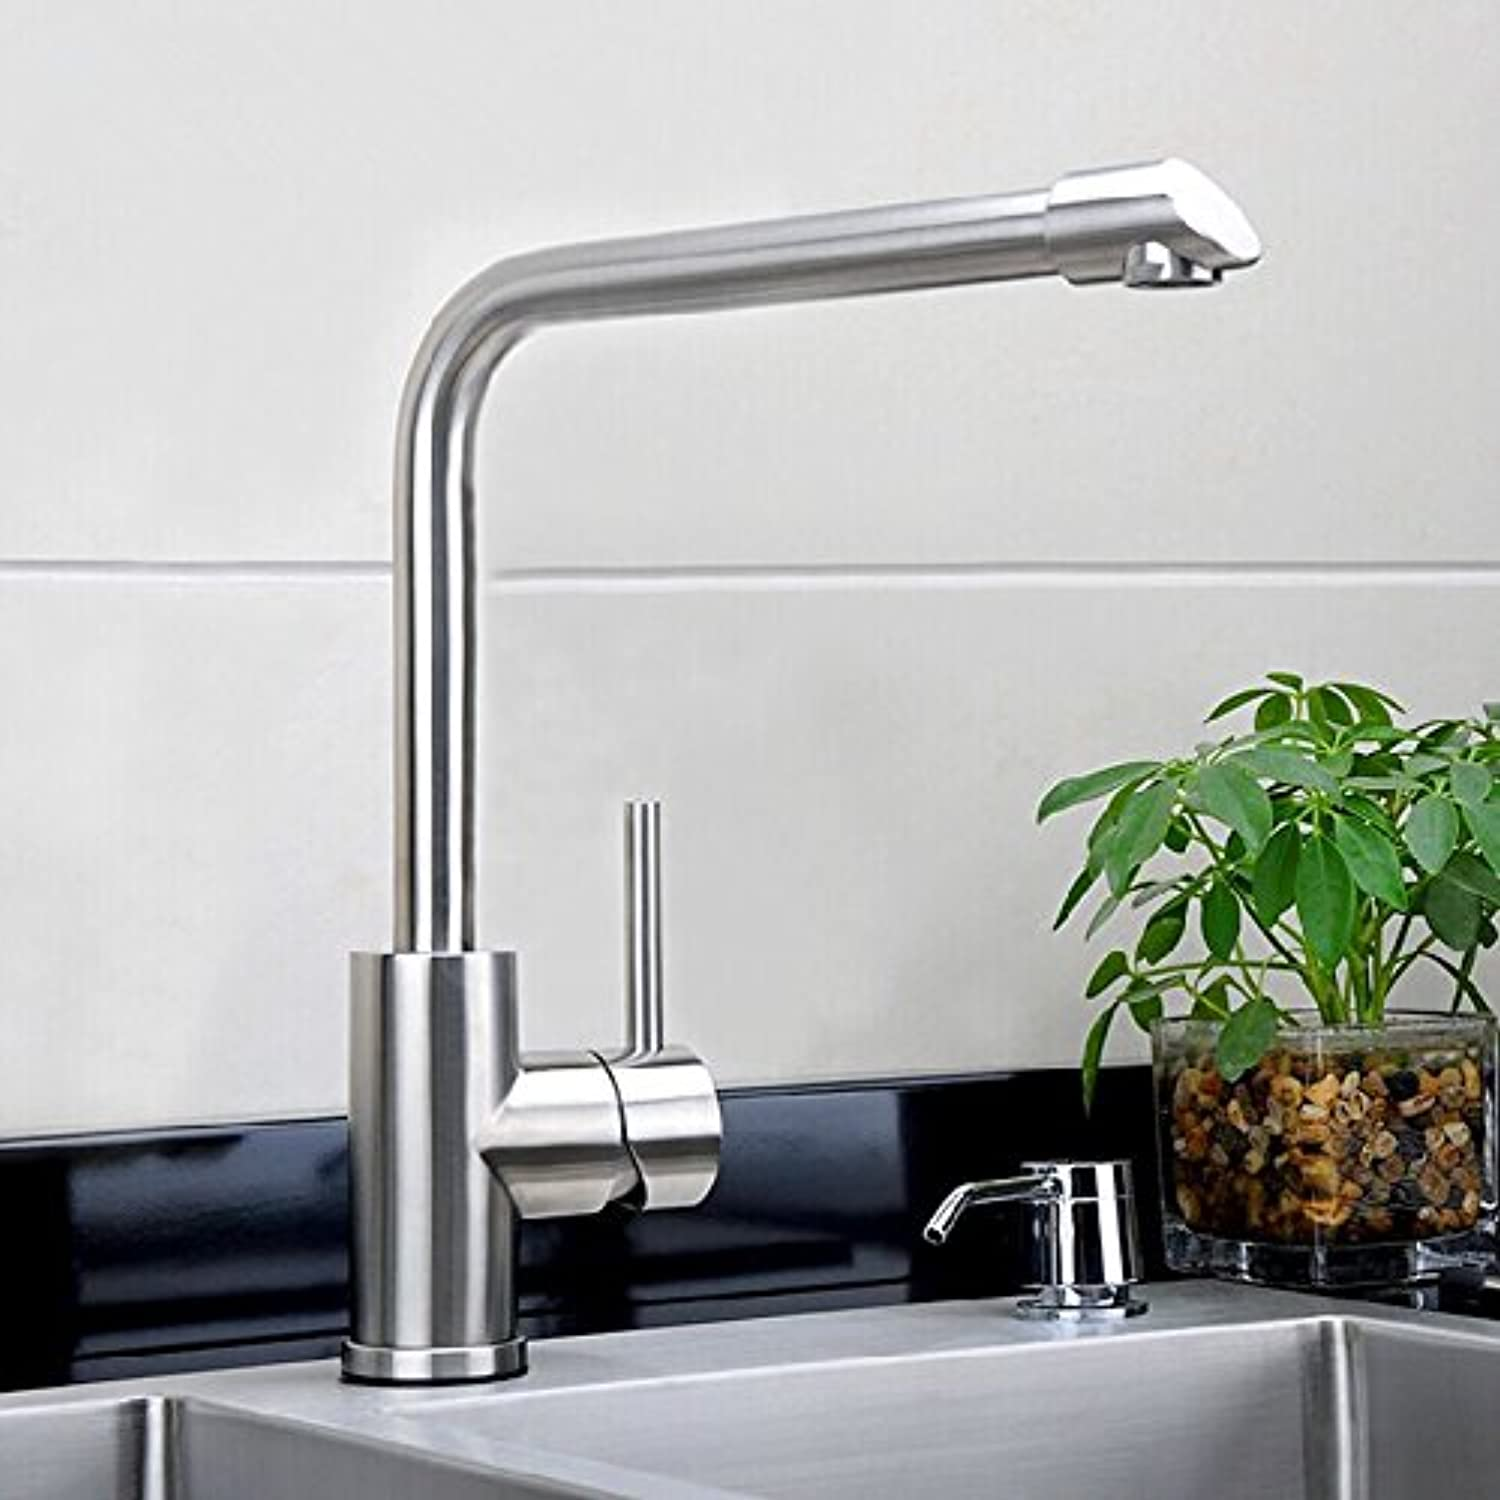 Hlluya Professional Sink Mixer Tap Kitchen Faucet Kitchen faucet 304 stainless steel hot and cold water kitchen faucet stainless steel vegetable box, tap.